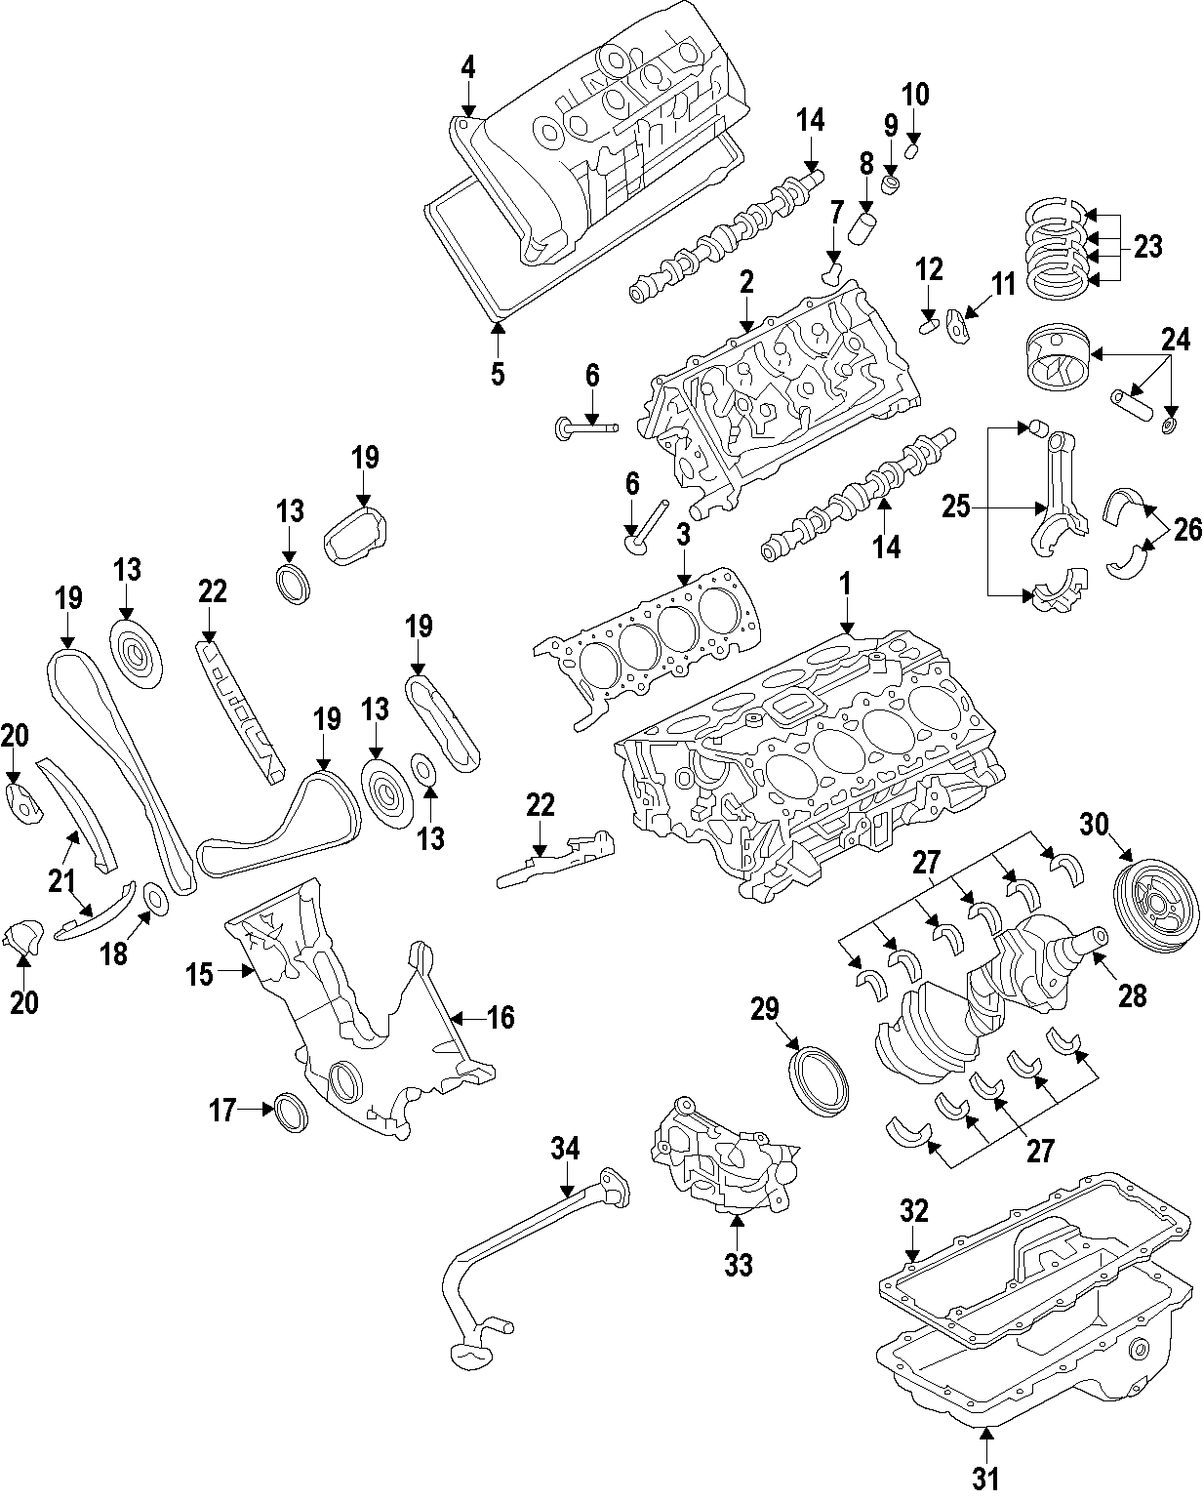 Ford 302 Engine Parts Diagram Weed Eater Lawn Tractor